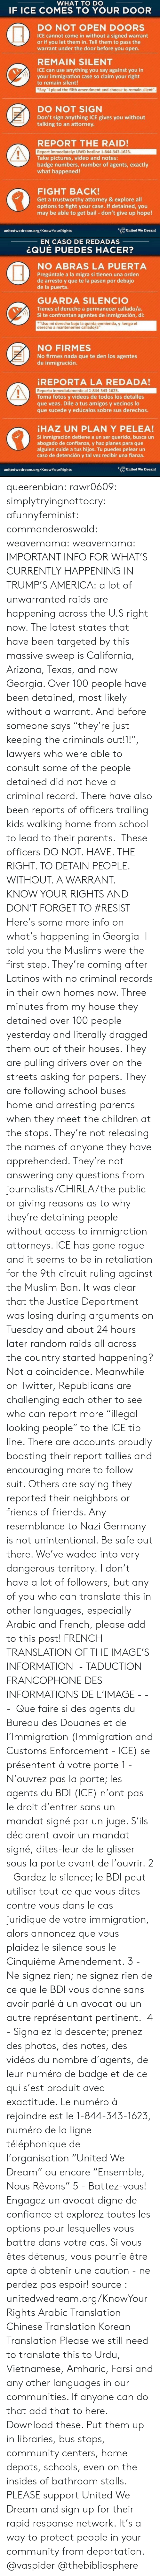 """Orden: WHAT TO DO  IF ICE COMES TO YOUR DOOR  DO NOT OPEN DOORS  ICE cannot come in without a signed warrant  or if you let them in. Tell them to pass the  warrant under the door before you open.  REMAIN SILENT  ICE can use anything you say against you in  your immigration case so claim your right  to remain silent!  Say """"I plead the fifth amendment and choose to remain silent""""  DO NOT SIGN  Don't sign anything ICE gives you without  talking to an attorney.  REPORT THE RAID!  Report immediately: UWD hotline 1-844-343-1623.  Take pictures, video and notes:  badge numbers, number of agents, exactly  what happened!  FIGHT BACK!  Get a trustworthy attorney & explore all  options to fight your case. If detained, you  may be able to get bail - don't give up hope!  unitedwedream.org/KnowYourRights  United We Dreami   EN CASO DE REDADAS  ¿QUÉ PUEDES HACER?  NO ABRAS LA PUERTA  Pregúntale a la migra si tienen una orden  de arresto y que te la pasen por debajo  de la puerta.  GUARDA SILENCIO  Tienes el derecho a permanecer callado/a.  Si te confrontan agentes de inmigración, di:  """"Uso mi derecho bajo la quinta enmienda, y tengo el  derecho a mantenerme callado/a""""  NO FIRMES  No firmes nada que te den los agentes  de inmigracion.  REPORTA LA REDADA!  Reporta inmediatamente al 1-844-343-1623.  Toma fotos y videos de todos los detalles  que veas. Dile a tus amigos y vecinos lo  que sucede y edúcalos sobre sus derechos.  HAZ UN PLAN Y PELEA!  Sí inmigración detiene a un ser querido, busca un  abogado de confianza, y haz planes para que  alguien cuide a tus hijos. Tu puedes pelear un  caso de detención y tal vez recibir una fianza.  unitedwedream.org/KnowYourRights  United We Dream queerenbian:  rawr0609:   simplytryingnottocry:  afunnyfeminist:  commanderoswald:   weavemama:  weavemama:  IMPORTANT INFO FOR WHAT'S CURRENTLY HAPPENING IN TRUMP'S AMERICA:a lot of unwarranted raids are happening across the U.S right now. The latest states that have been targeted by this massive sweep"""